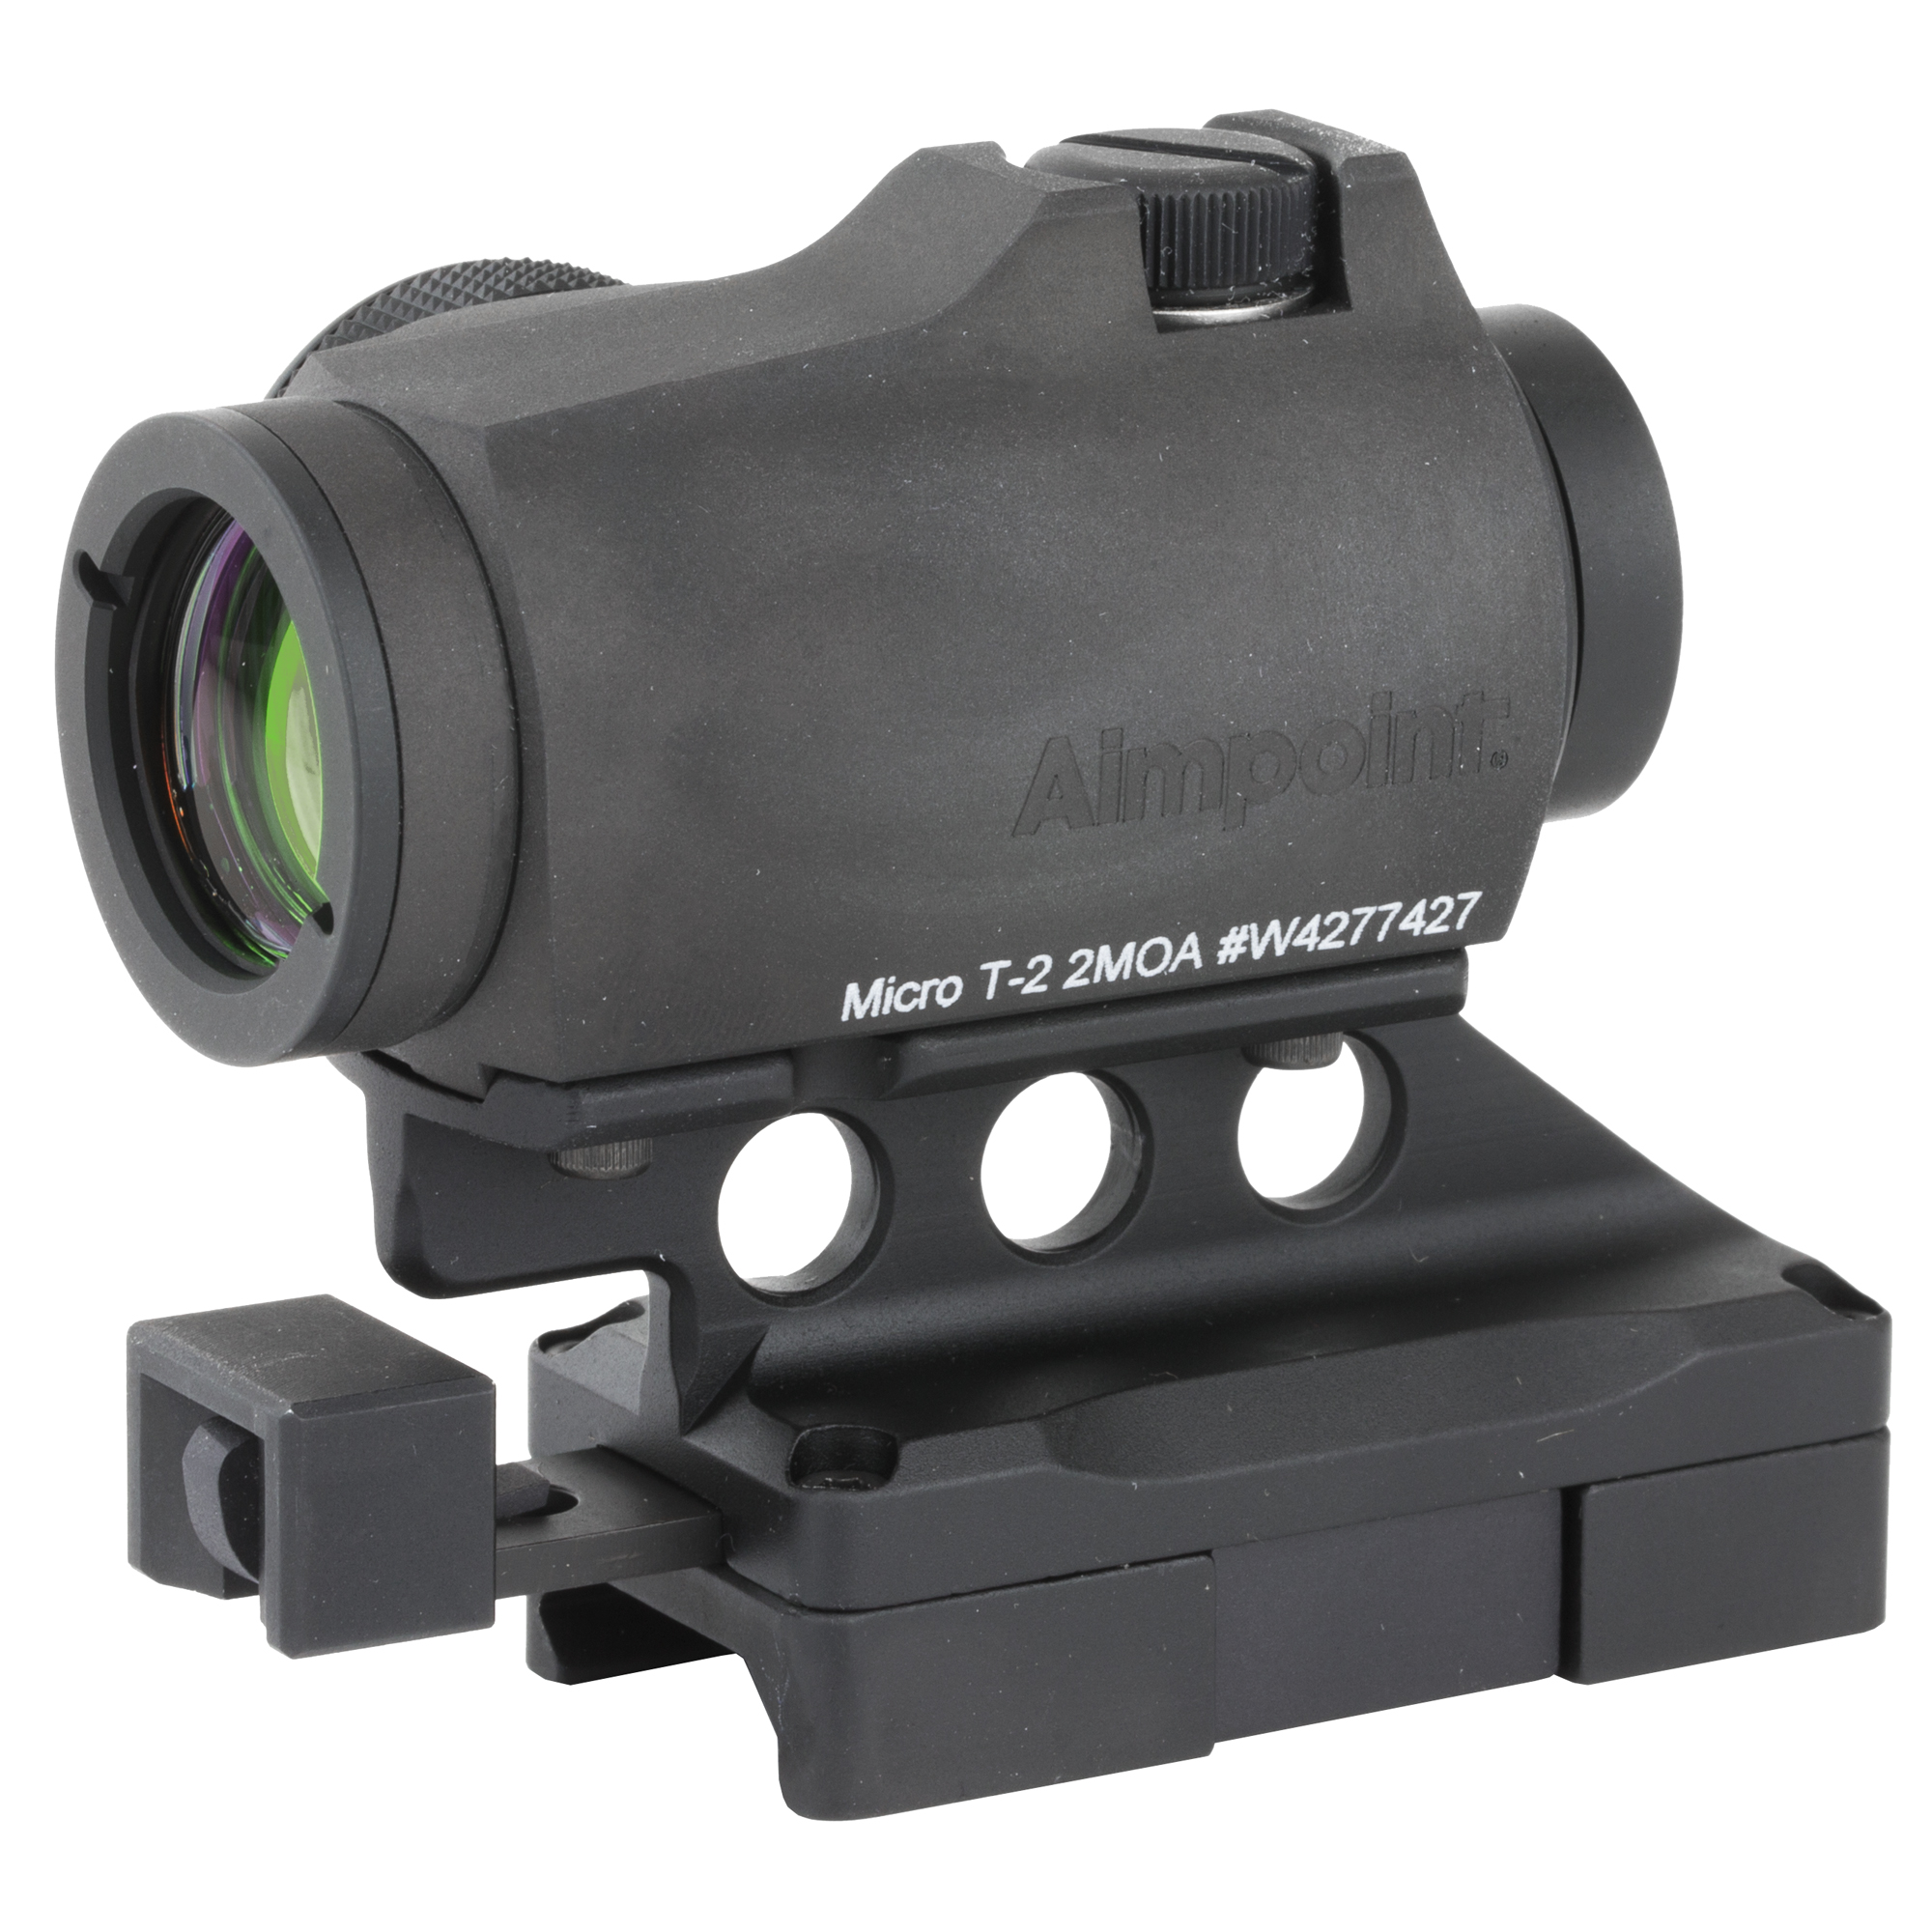 """Aimpoint T2 optic with the Sidelok mount. The Sidelok is a revolutionary new mounting system for optics. The patented cam system locks the mount down onto picatinny without the need of tools"""" side levers"""" or huge knobs. The release system allows users to change out their optics on the fly with less hassle. The 2 levels of locks (Micro Mount Specific) ensure the optic will not move unintentionally"""" maintaining zero for the shooter"""" and returning to zero when remounting in same position after removal. This mount utilizes a lower 1/3 co-witness."""